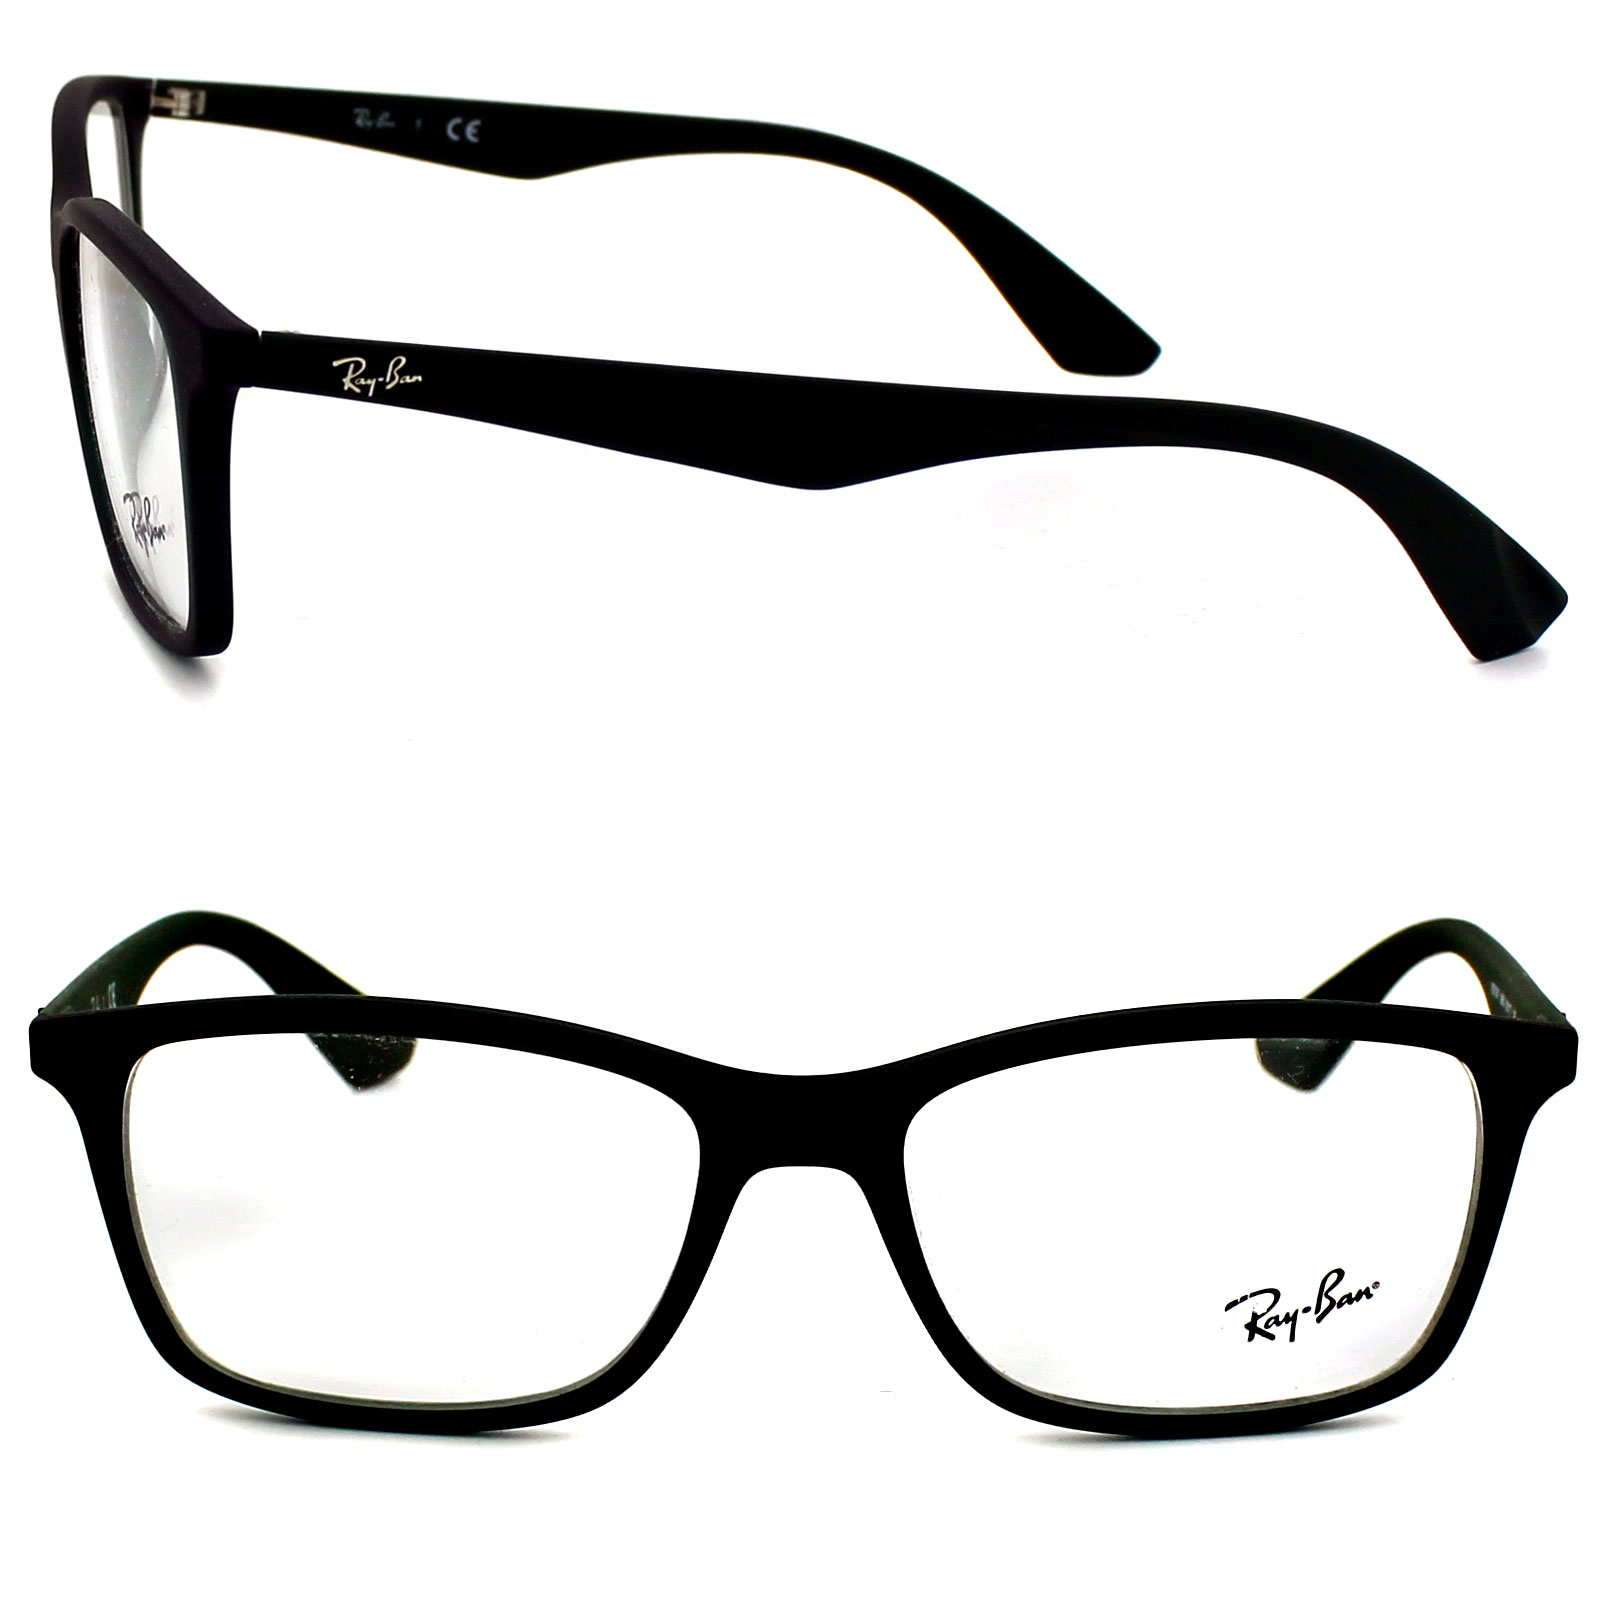 9759e33b2f Cheap Ray-Ban 7047 Glasses Frames - Discounted Sunglasses